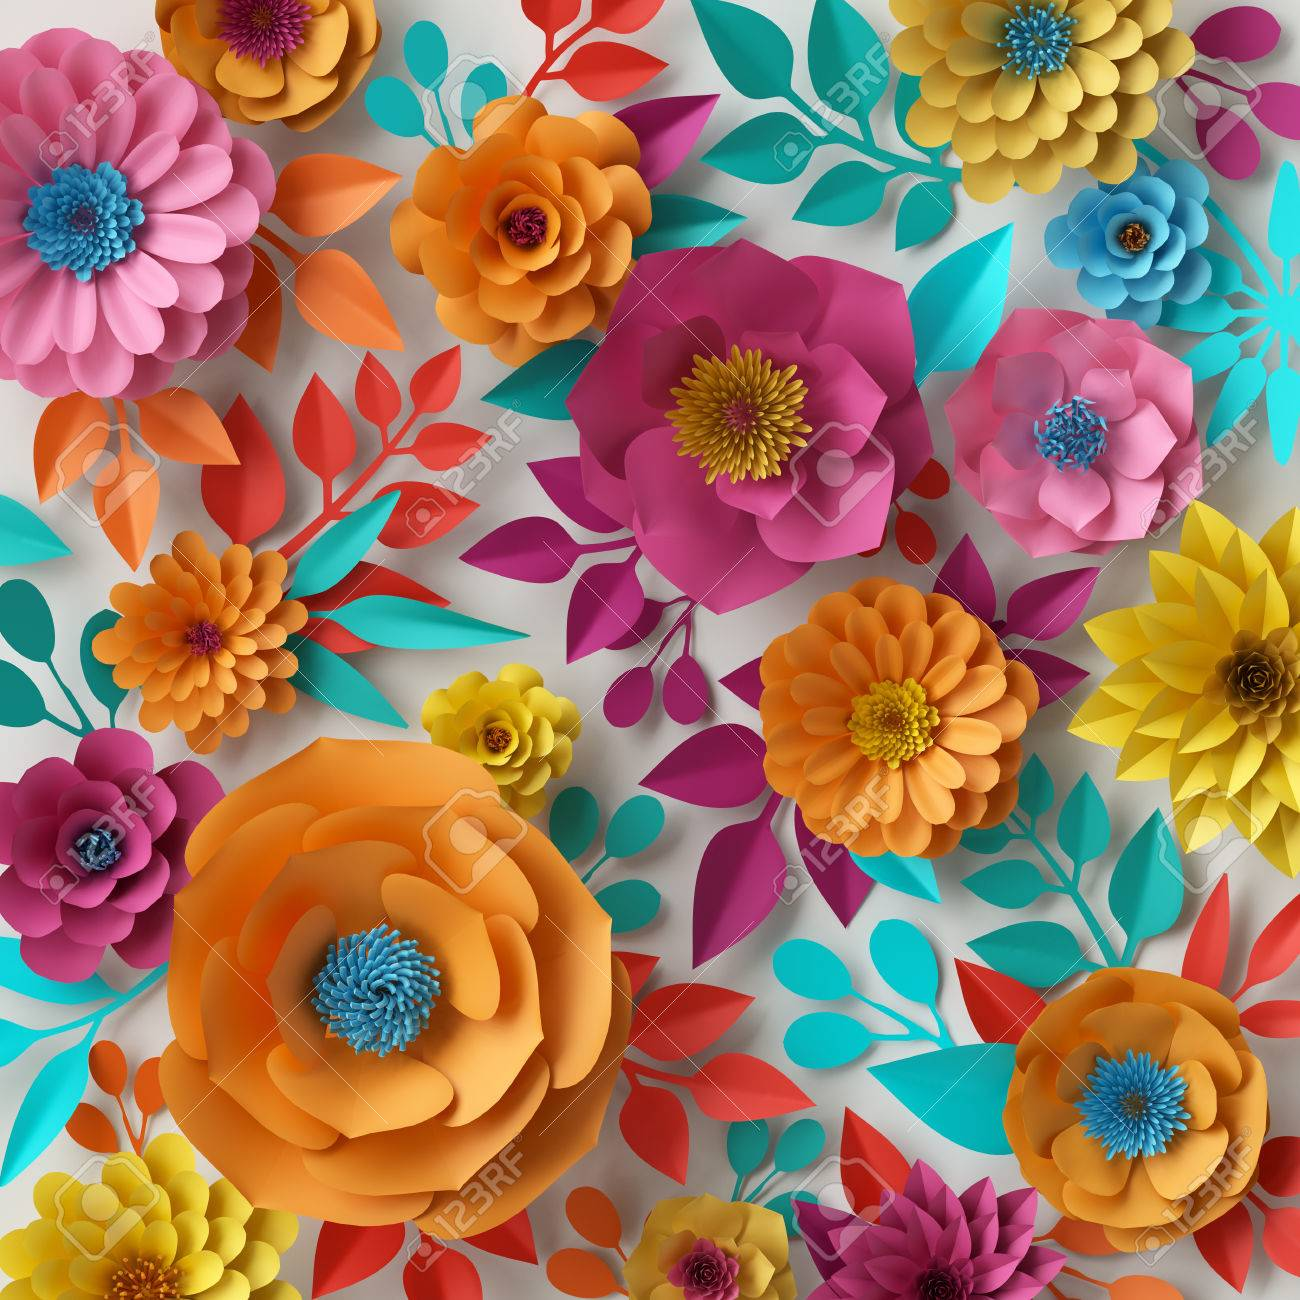 Paper Flower Wallpaper